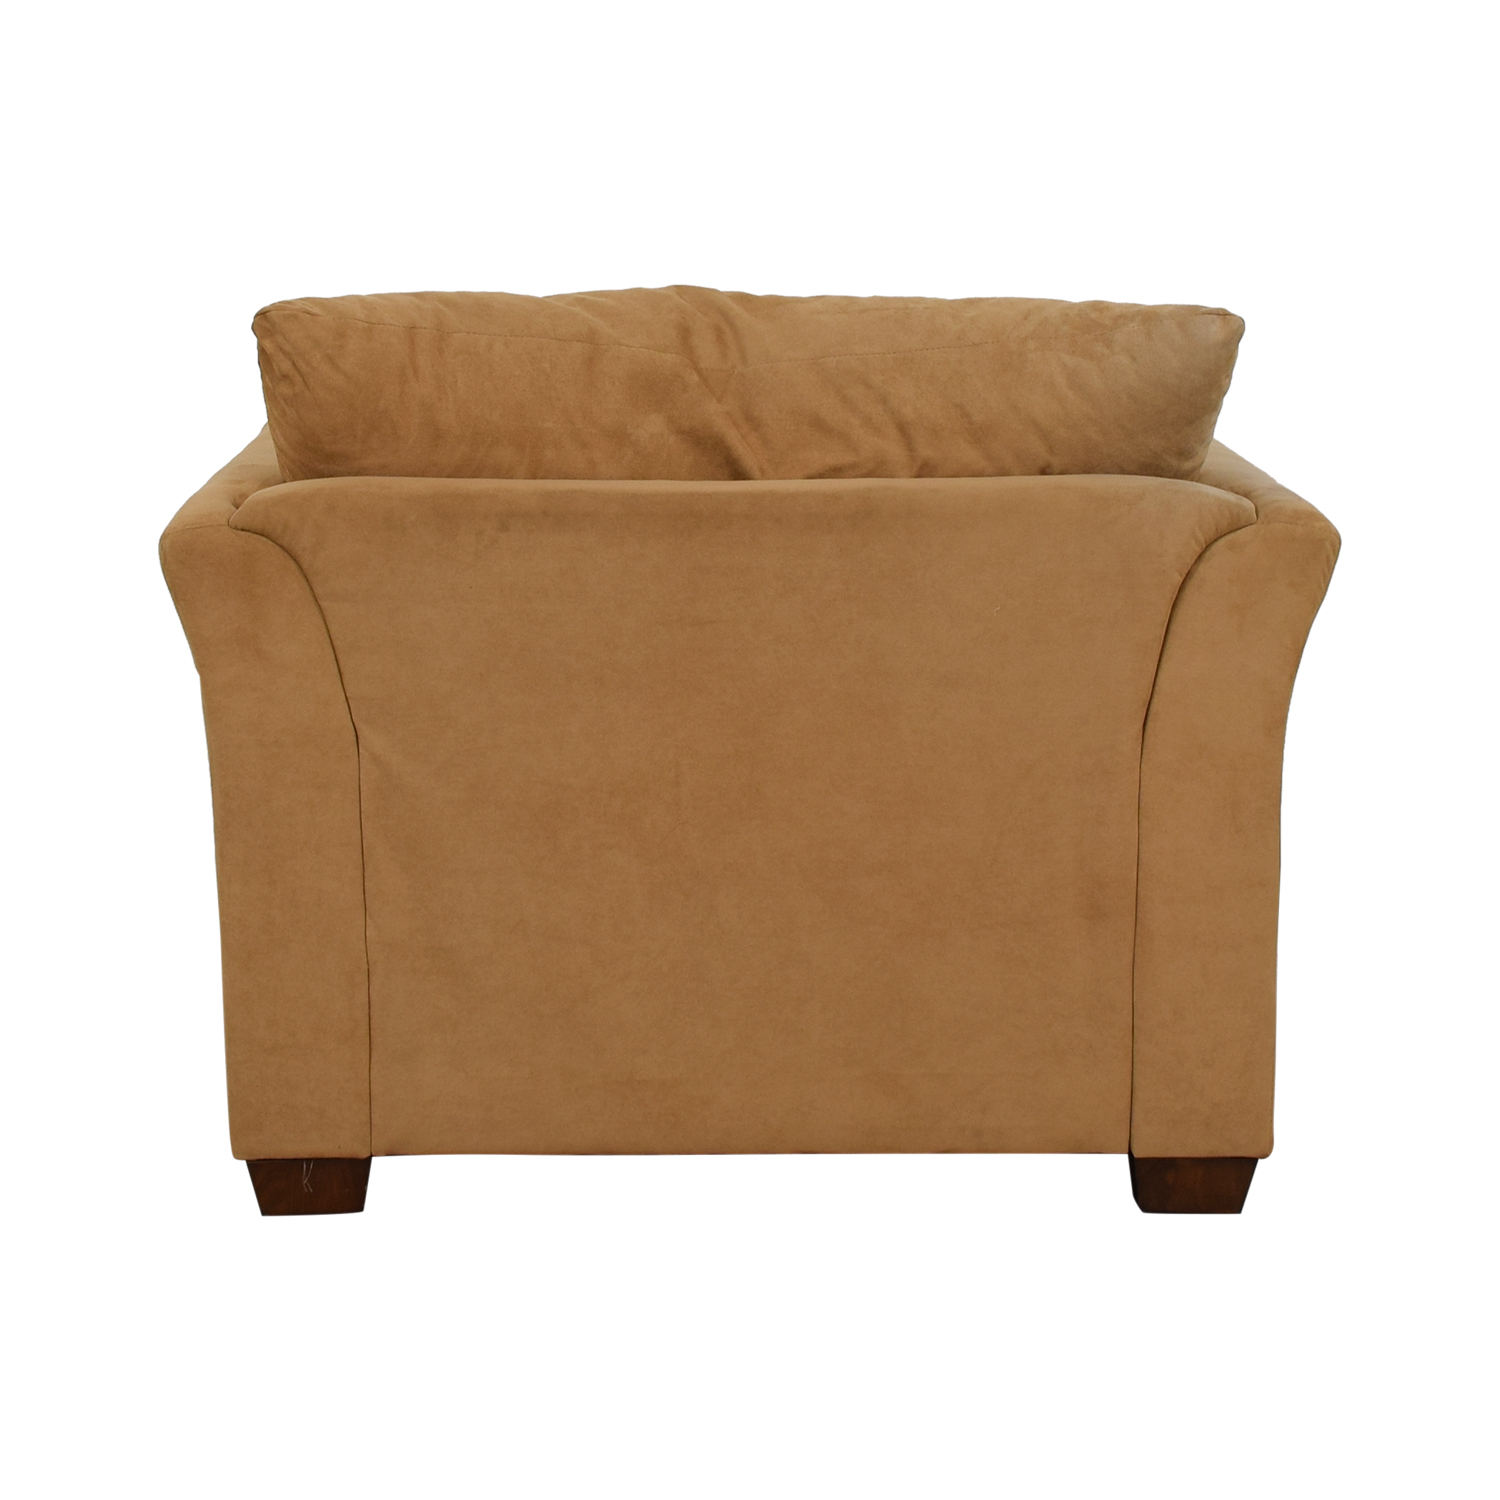 Raymour & Flanigan Raymour & Flanigan Camel Microsuede Accent Chair coupon